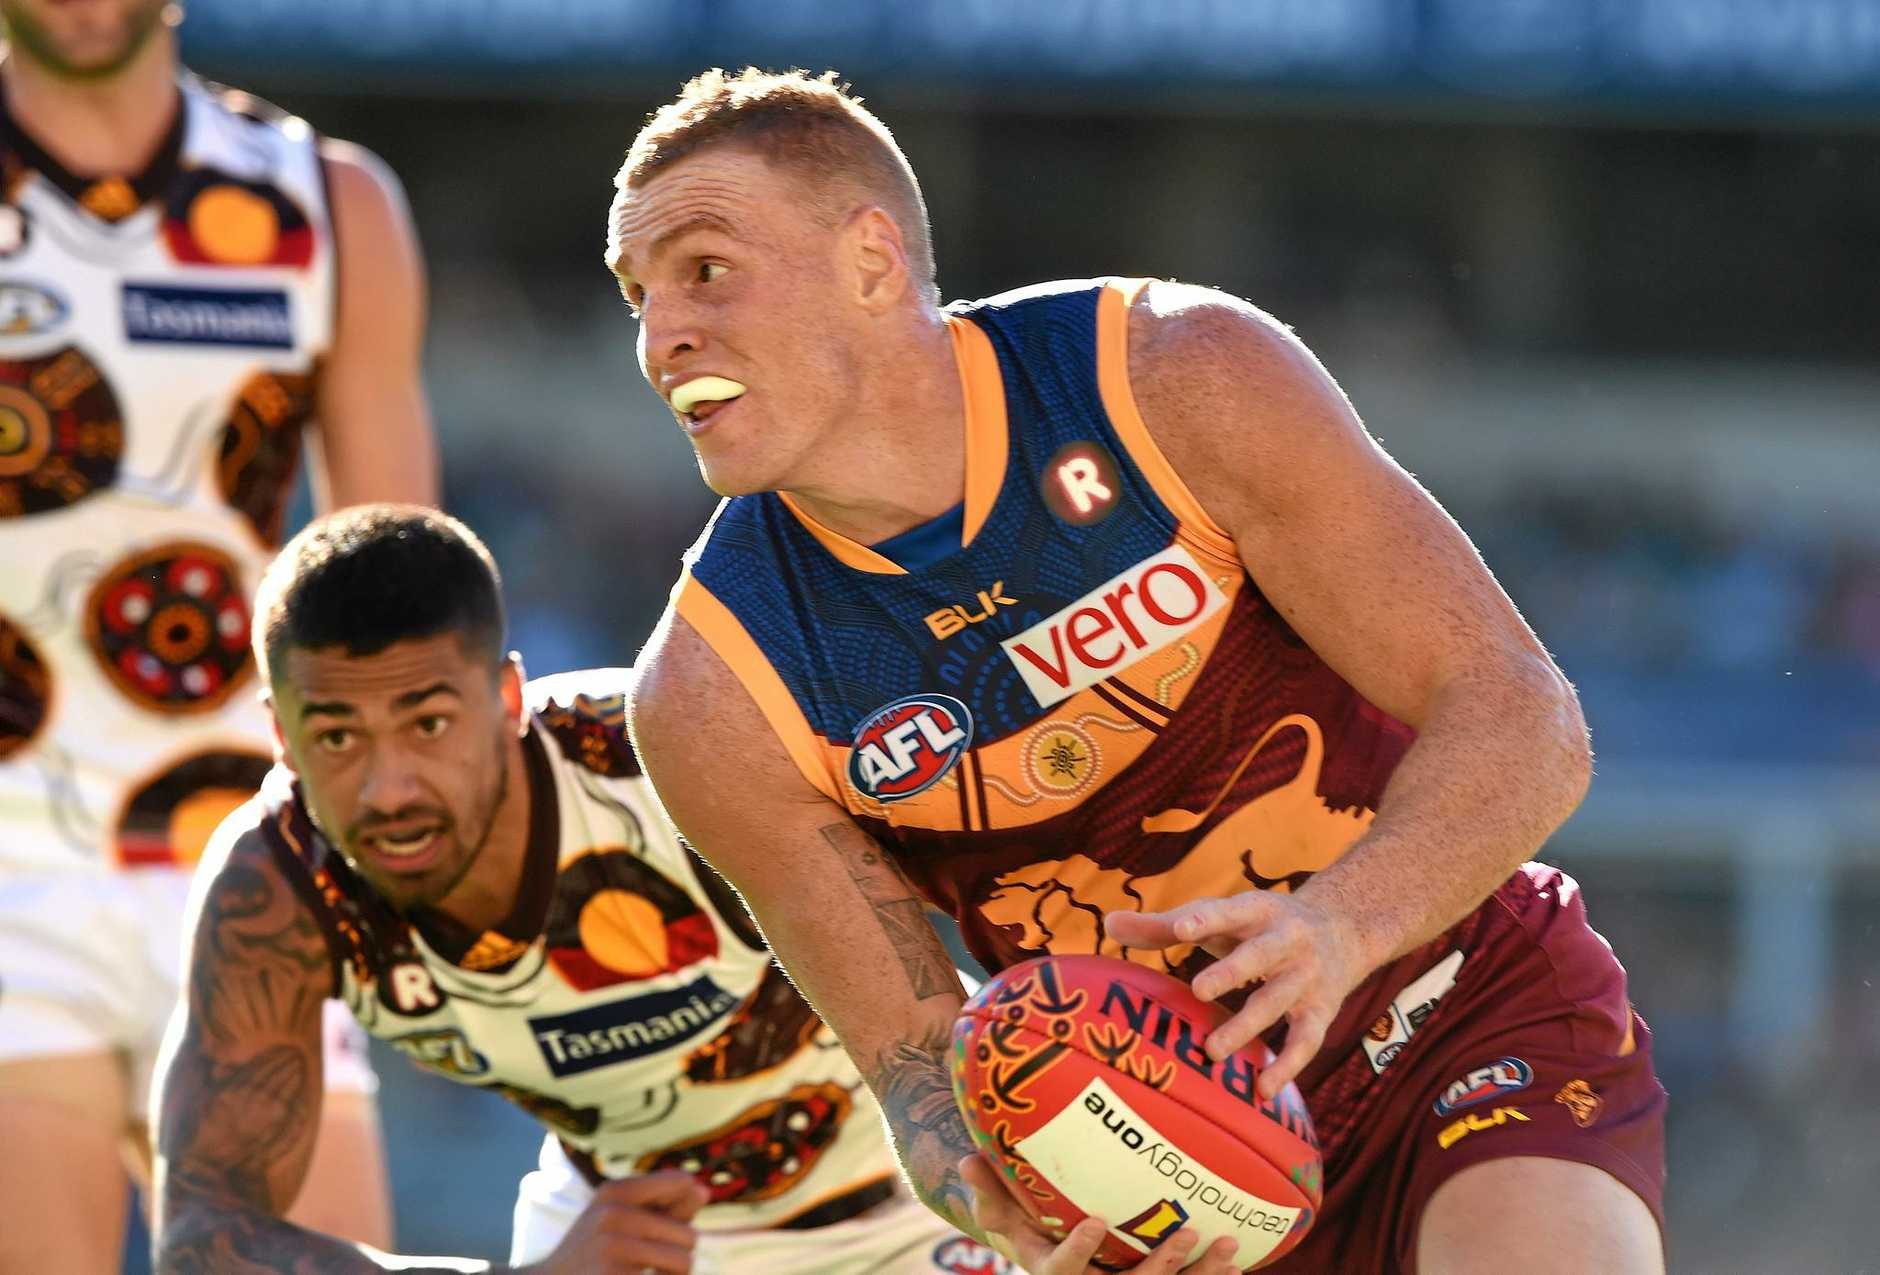 MUCH IMPROVED: Lions player Mitch Robinson during the round 10 AFL match between the Brisbane Lions and the Hawthorne Hawks at the Gabba.